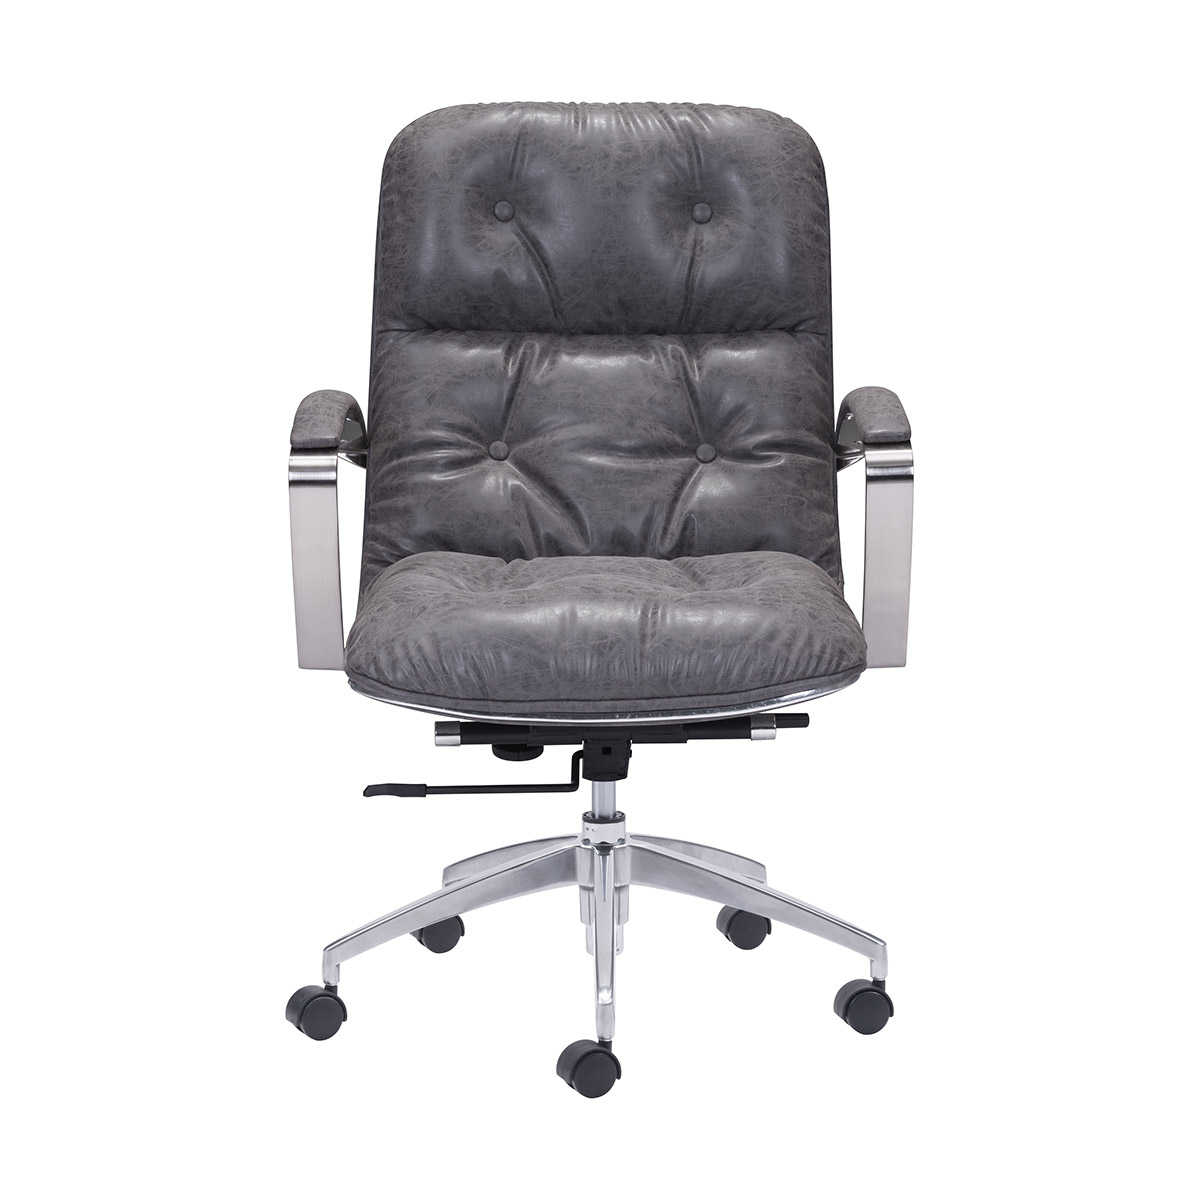 Zuo Era Avenue Office Chair Vintage In Gray Boost Home